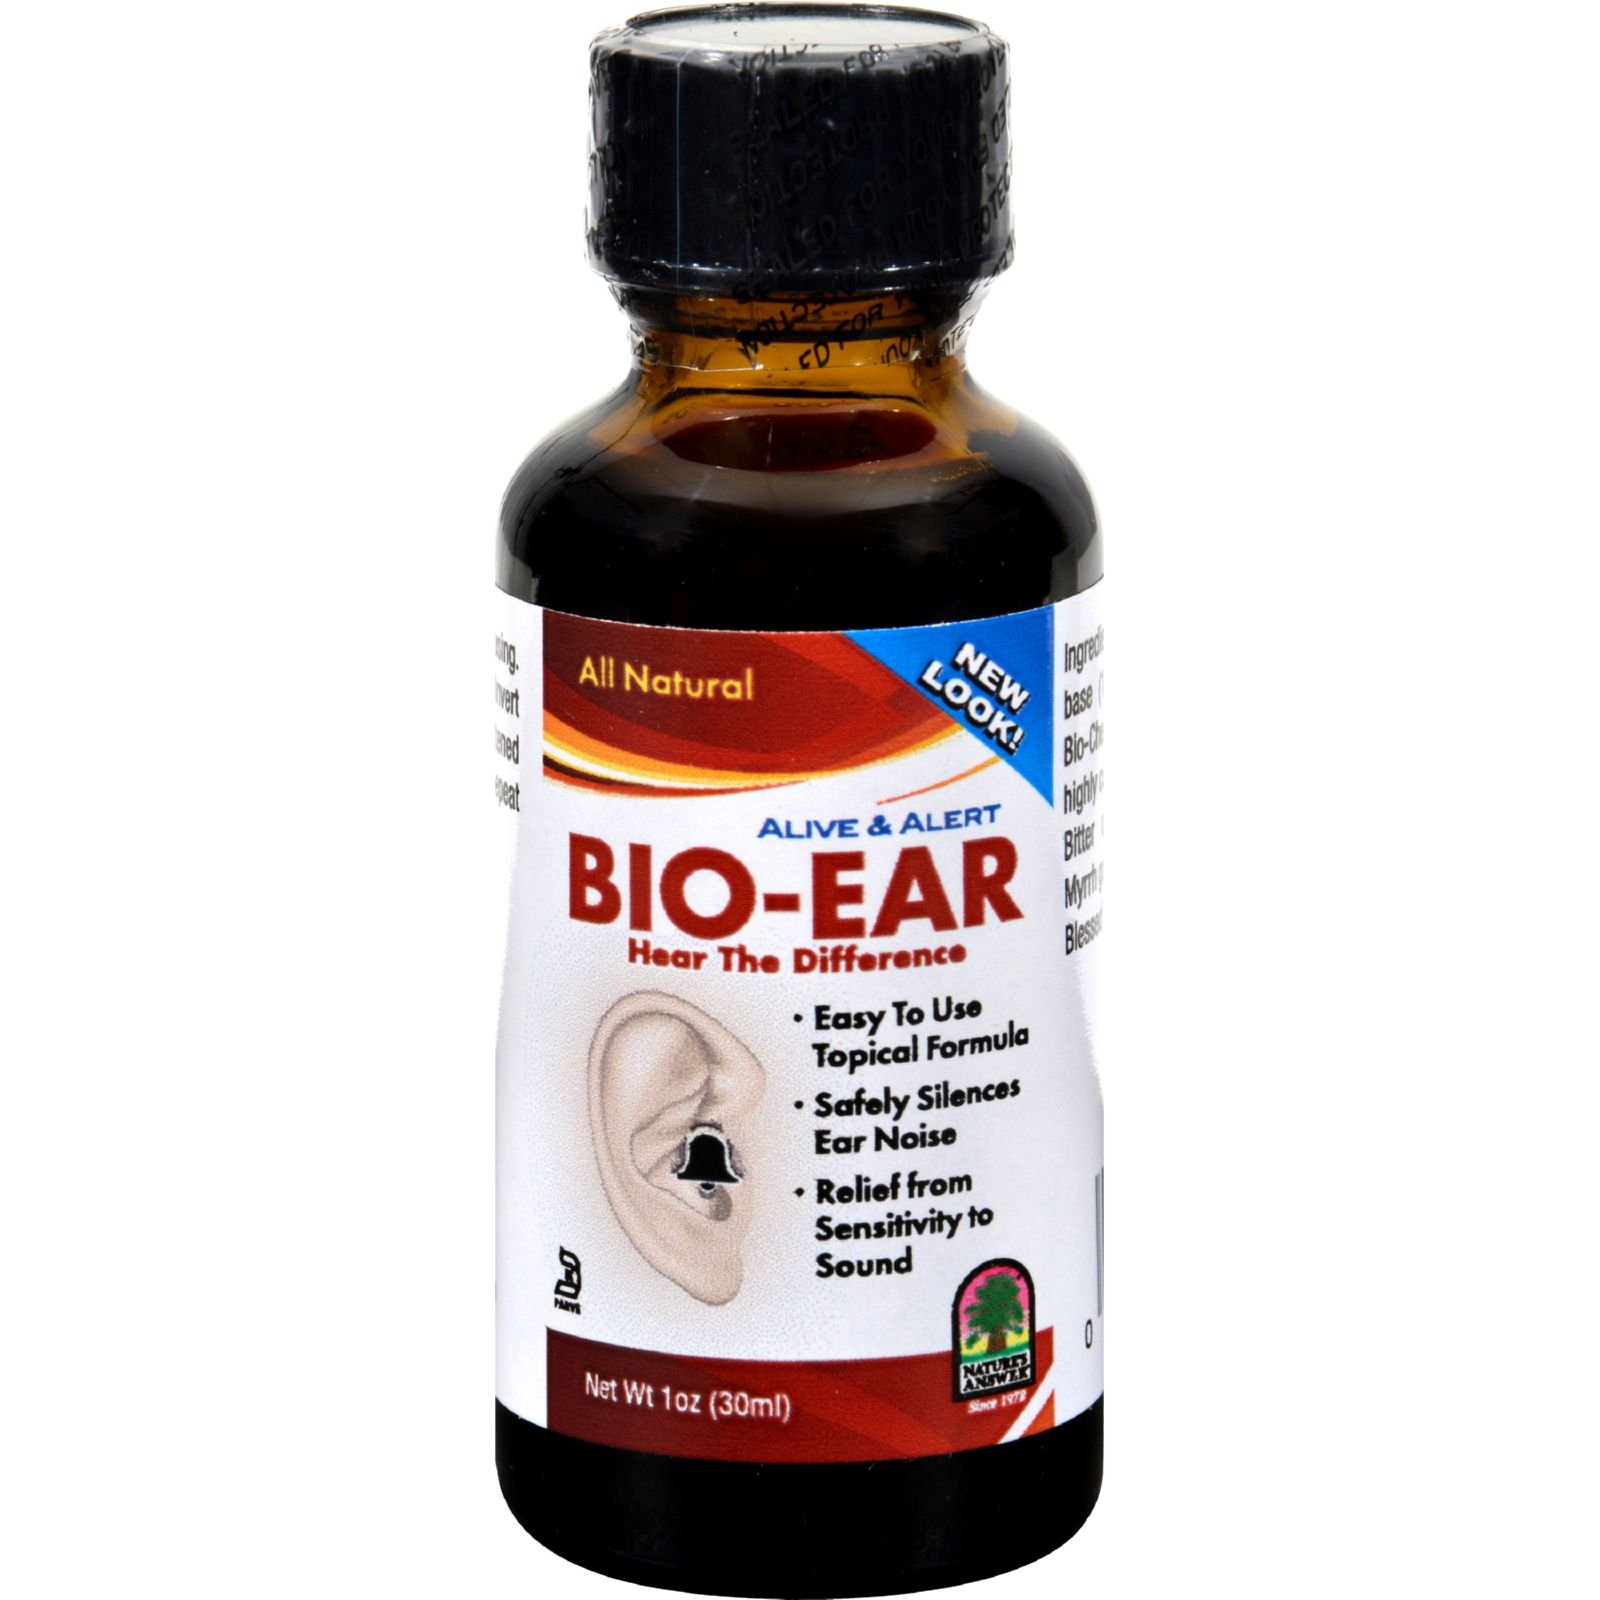 Natures Answer Alive and Alert Bio-Ear - Relief from Sensitivity to Sound - All Natural - 1 fl oz (Pack of 2)